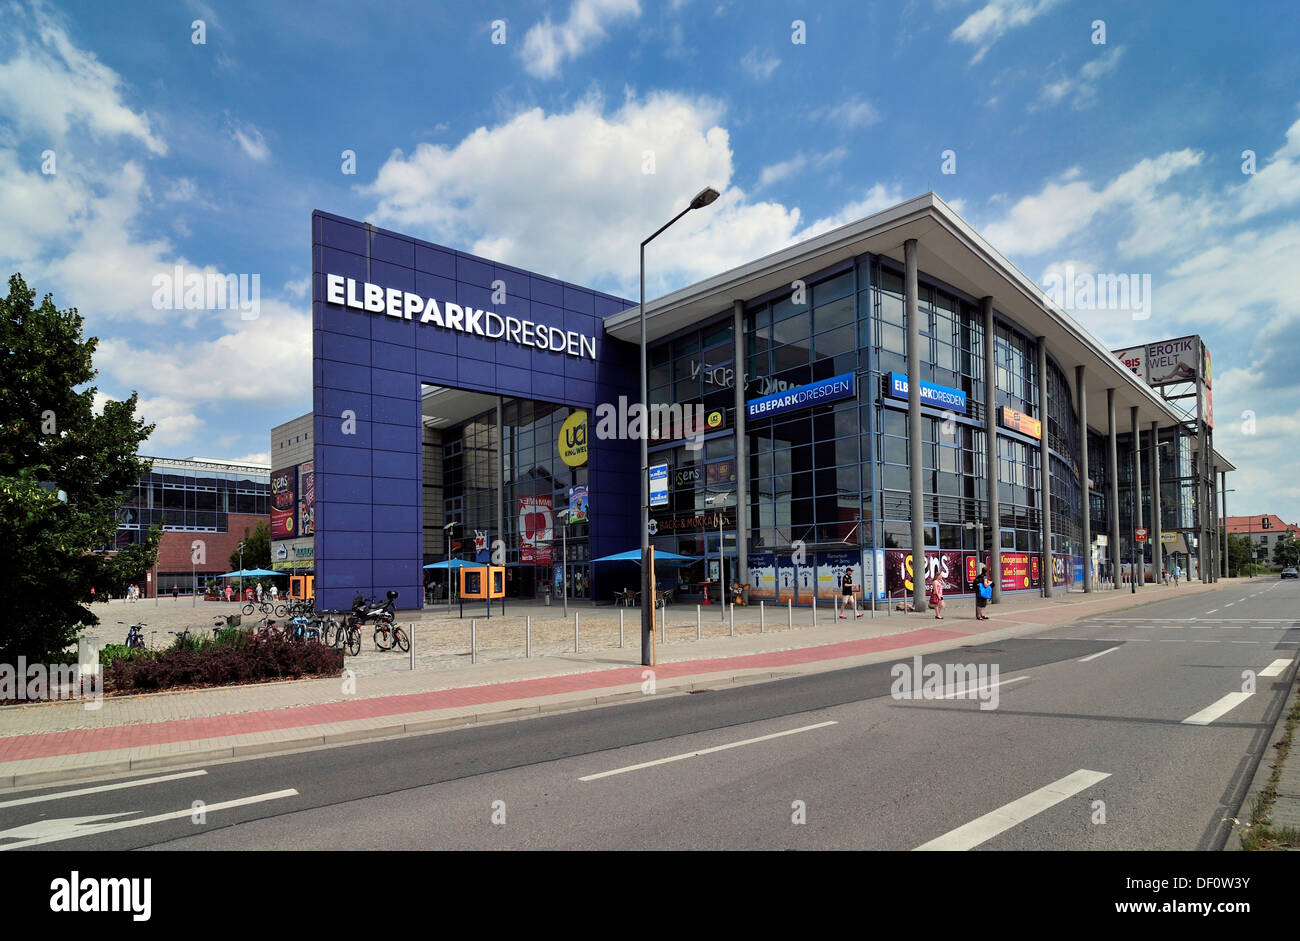 shopping centre elbe park dresden einkaufszentrum elbepark stock photo royalty free image. Black Bedroom Furniture Sets. Home Design Ideas